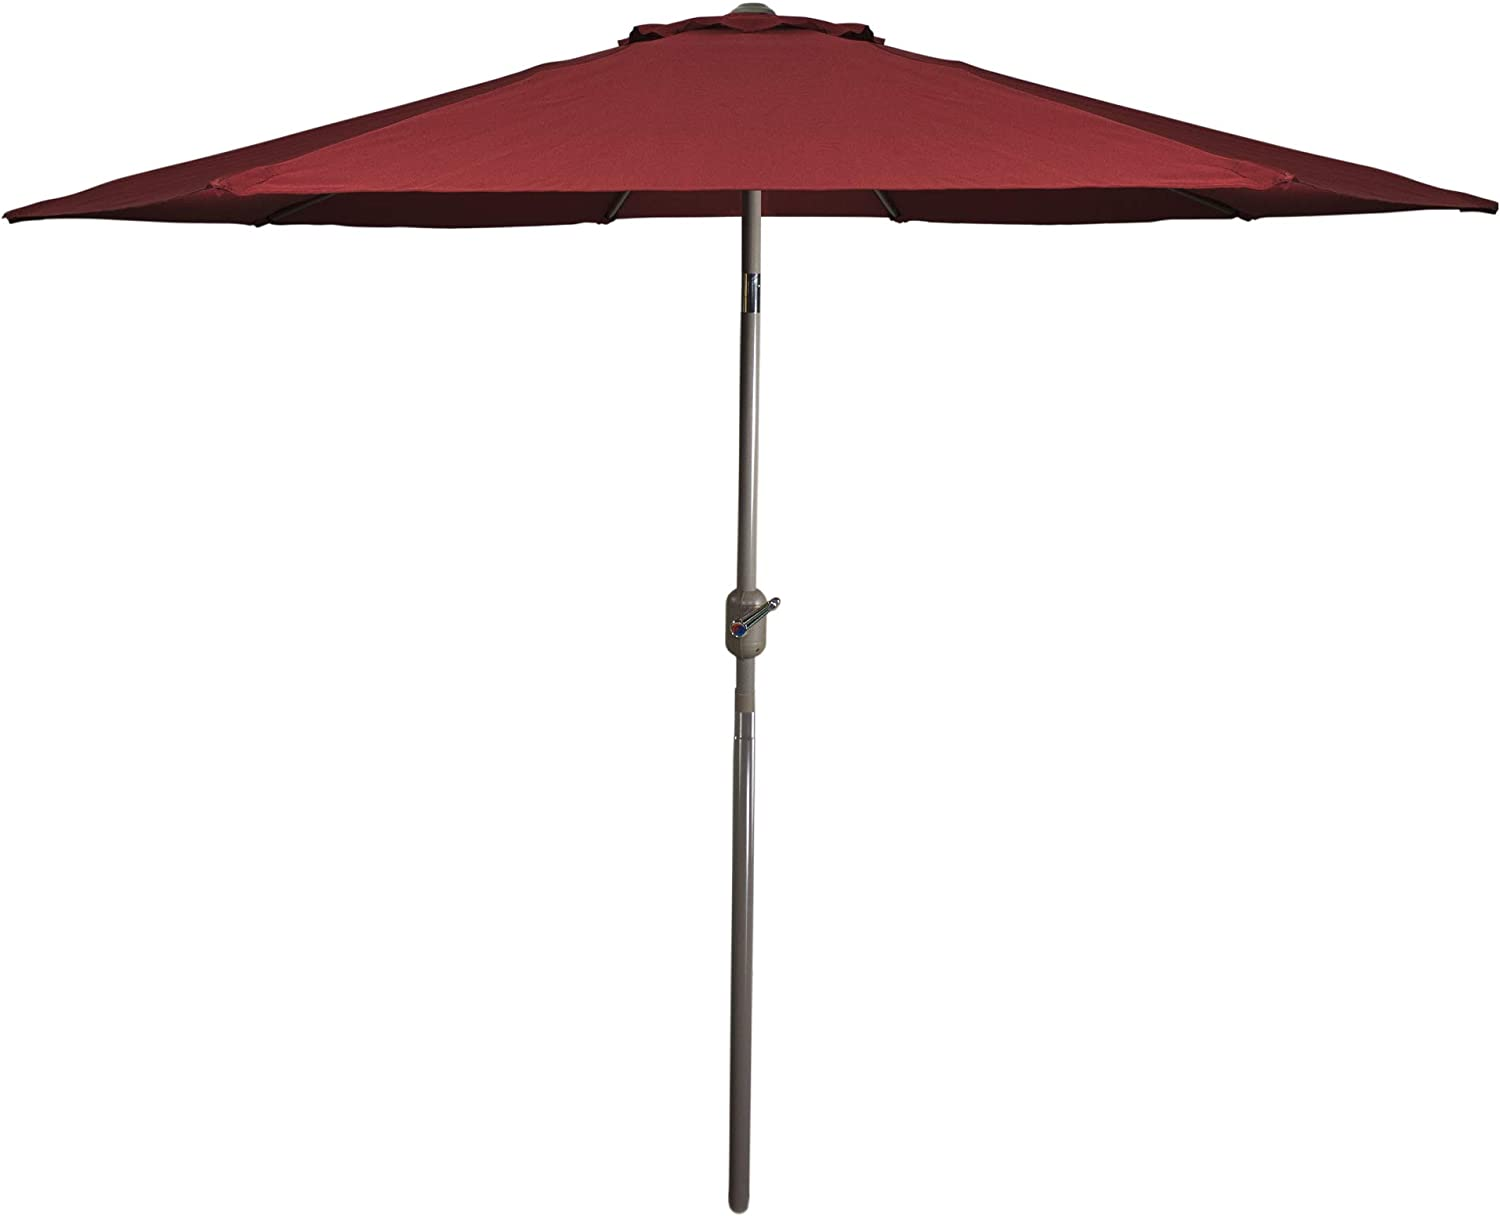 Northlight safety 9ft Outdoor Attention brand Patio Market and Hand with Umbrella Crank